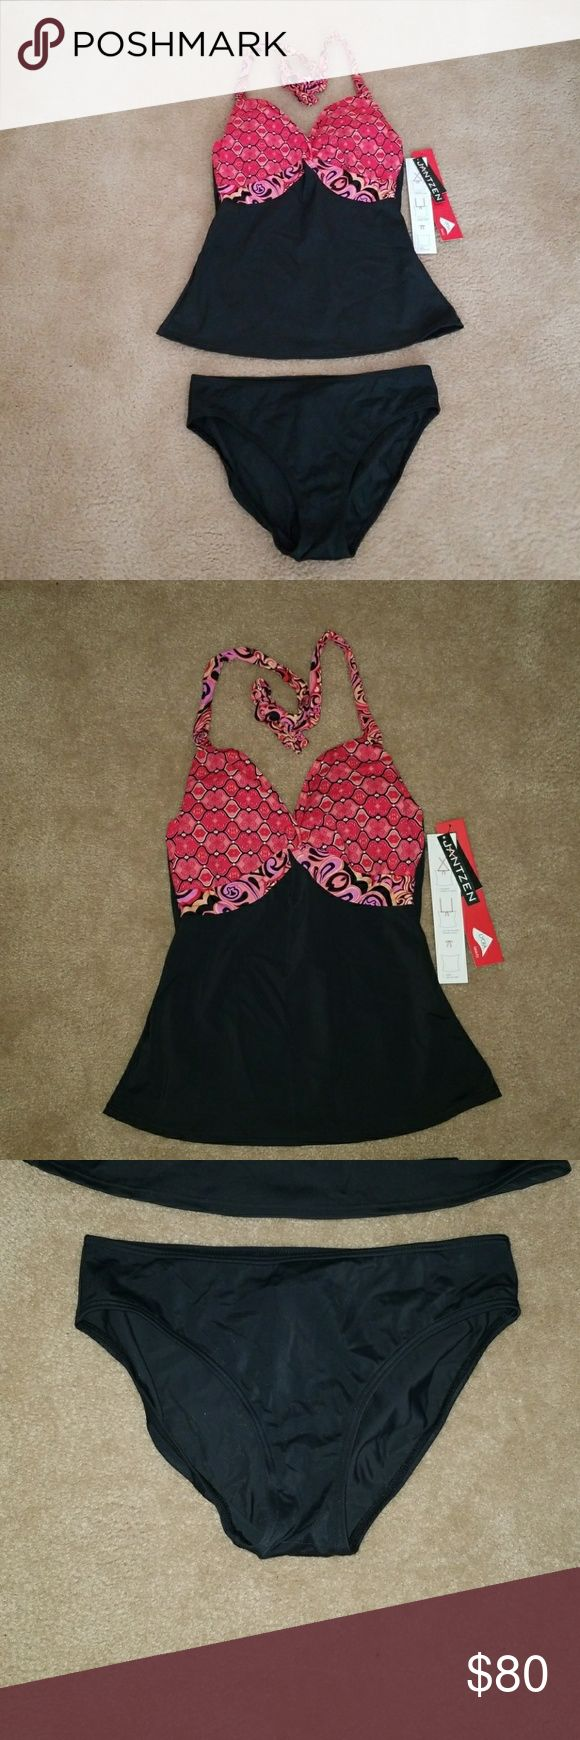 Jantzen Halter Bikini Swimsuit 2 Pc Size 6 NWT Jantzen Halter Bikini Swimsuit   Colors - Black, Red, Pink and Multi-colors  Size 6  New with Tags Retails $120  Lycra Xtra Life Spandex  2 Pc set Bikini Top & Bikini Bottom  Bikini Top can be worn 3 different ways:  Halter, Over the Shoulder or Cross Back Jantzen Swim Bikinis